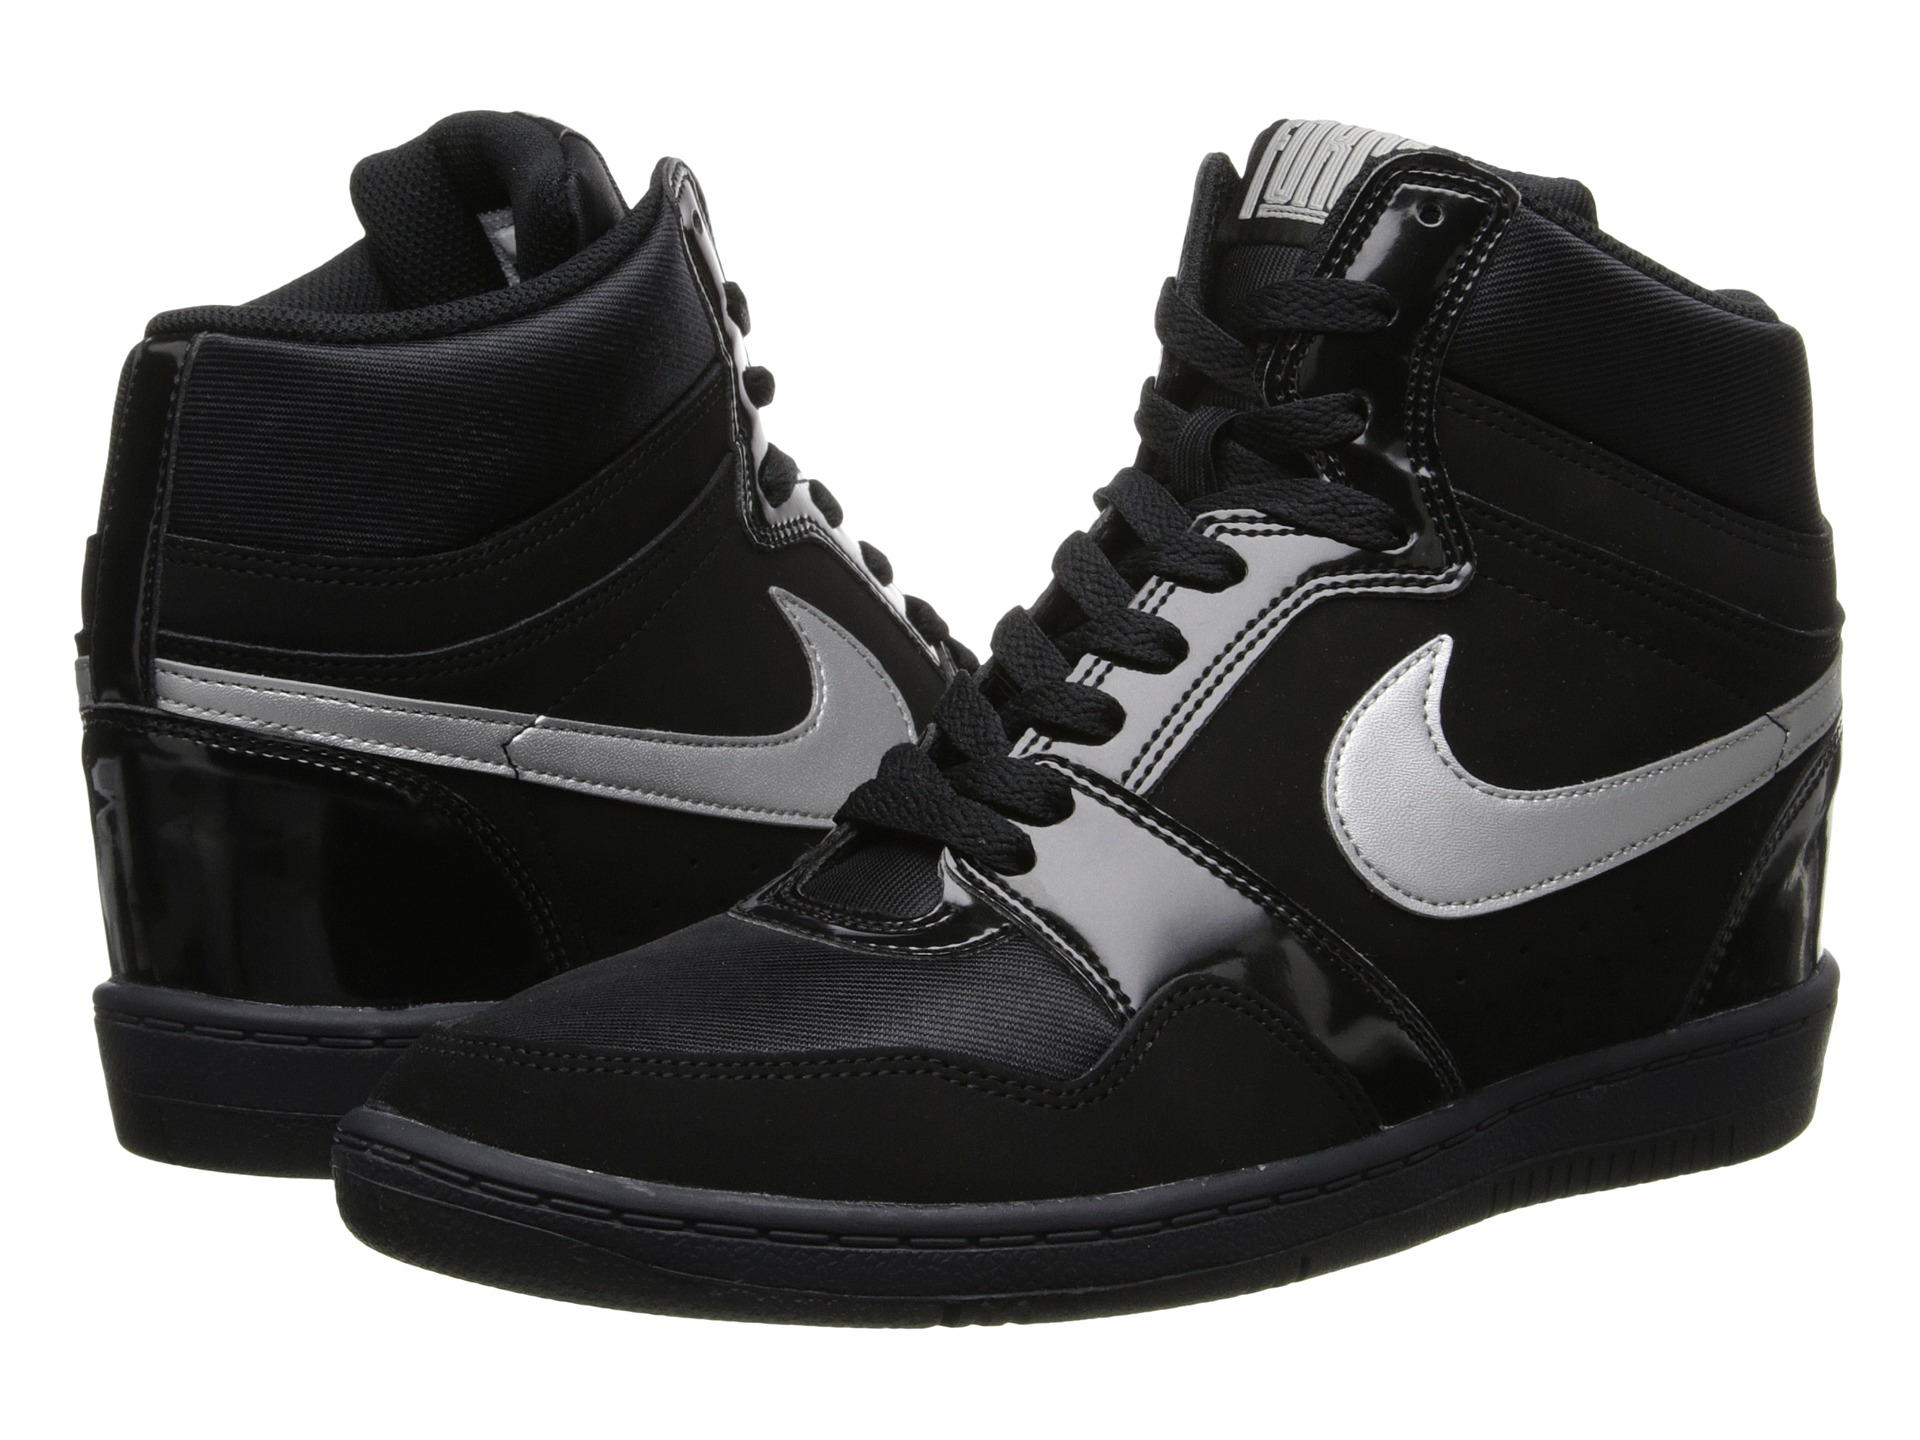 36cc226728df1 Nike Force Sky High Sneaker Wedge in Black - Lyst